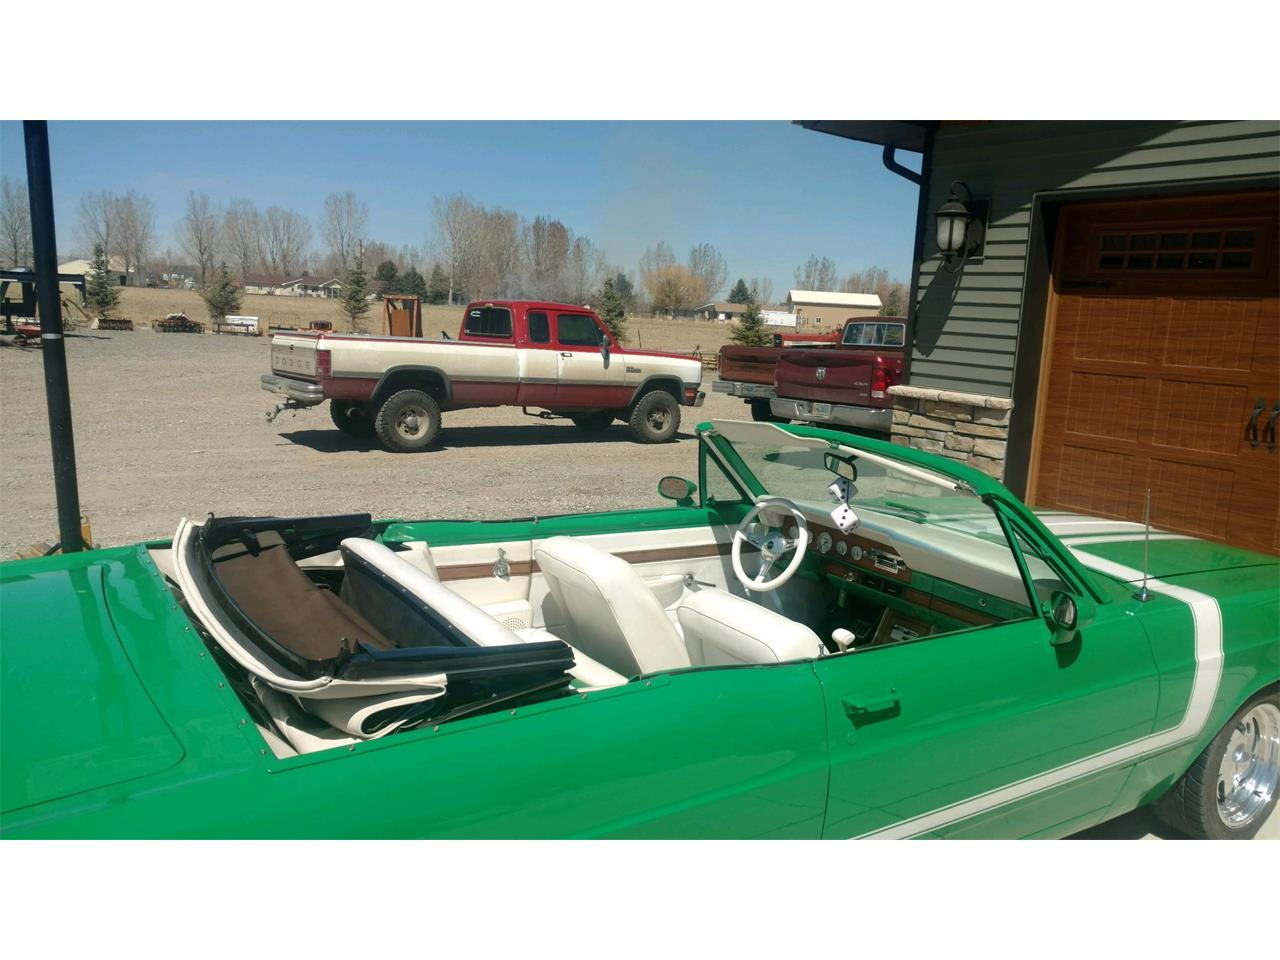 Large Picture of 1966 Ford Fairlane Auction Vehicle Offered by Classic Car Auction Group - NB0C